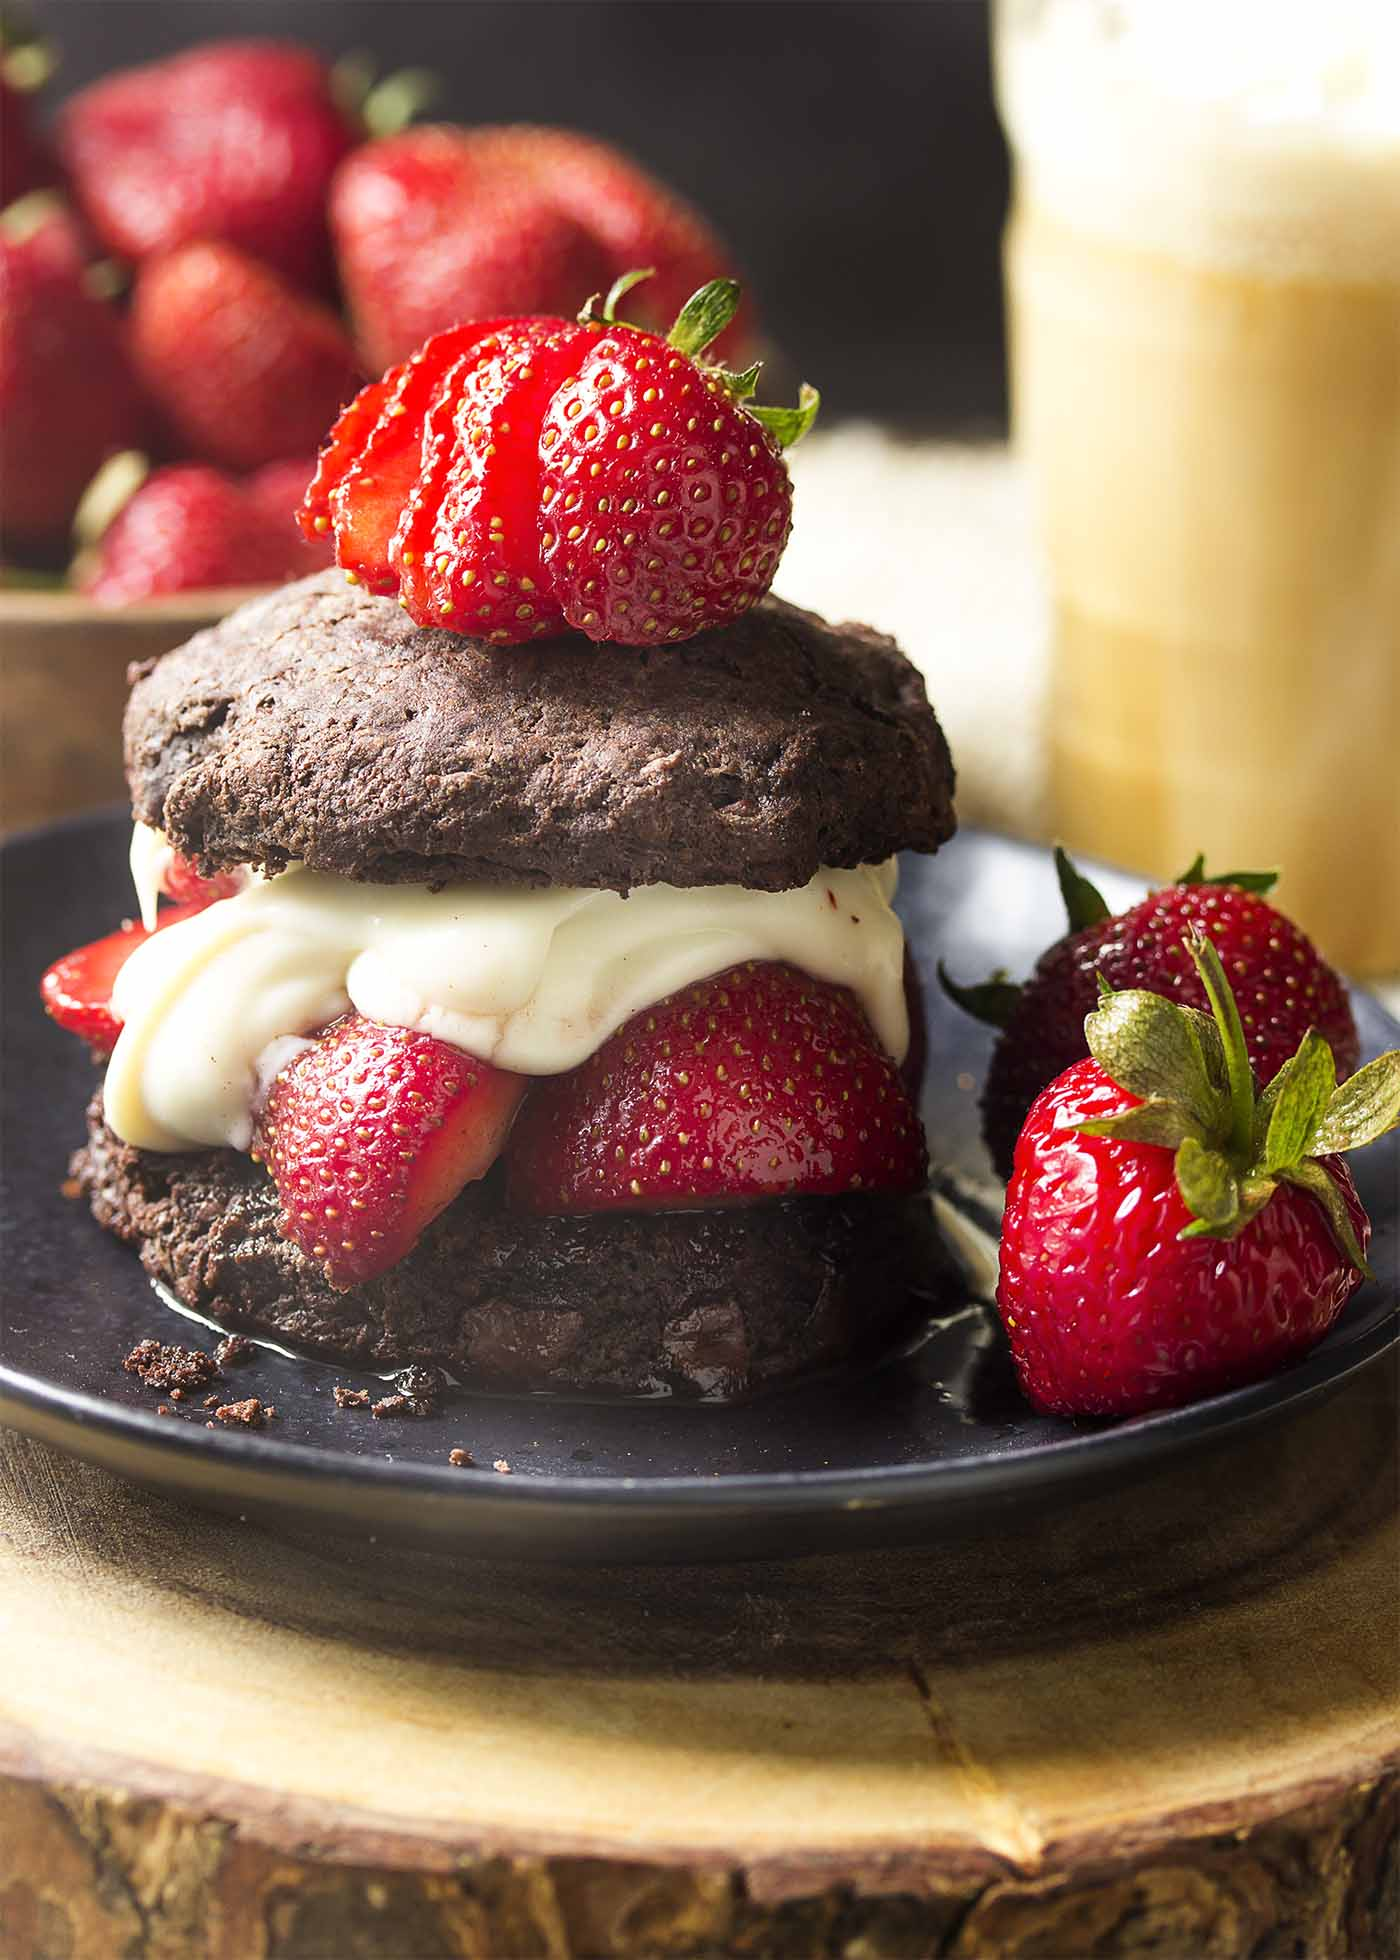 Sliced strawberries and bourbon cream sauce sandwiched between two chocolate biscuits on a plate.